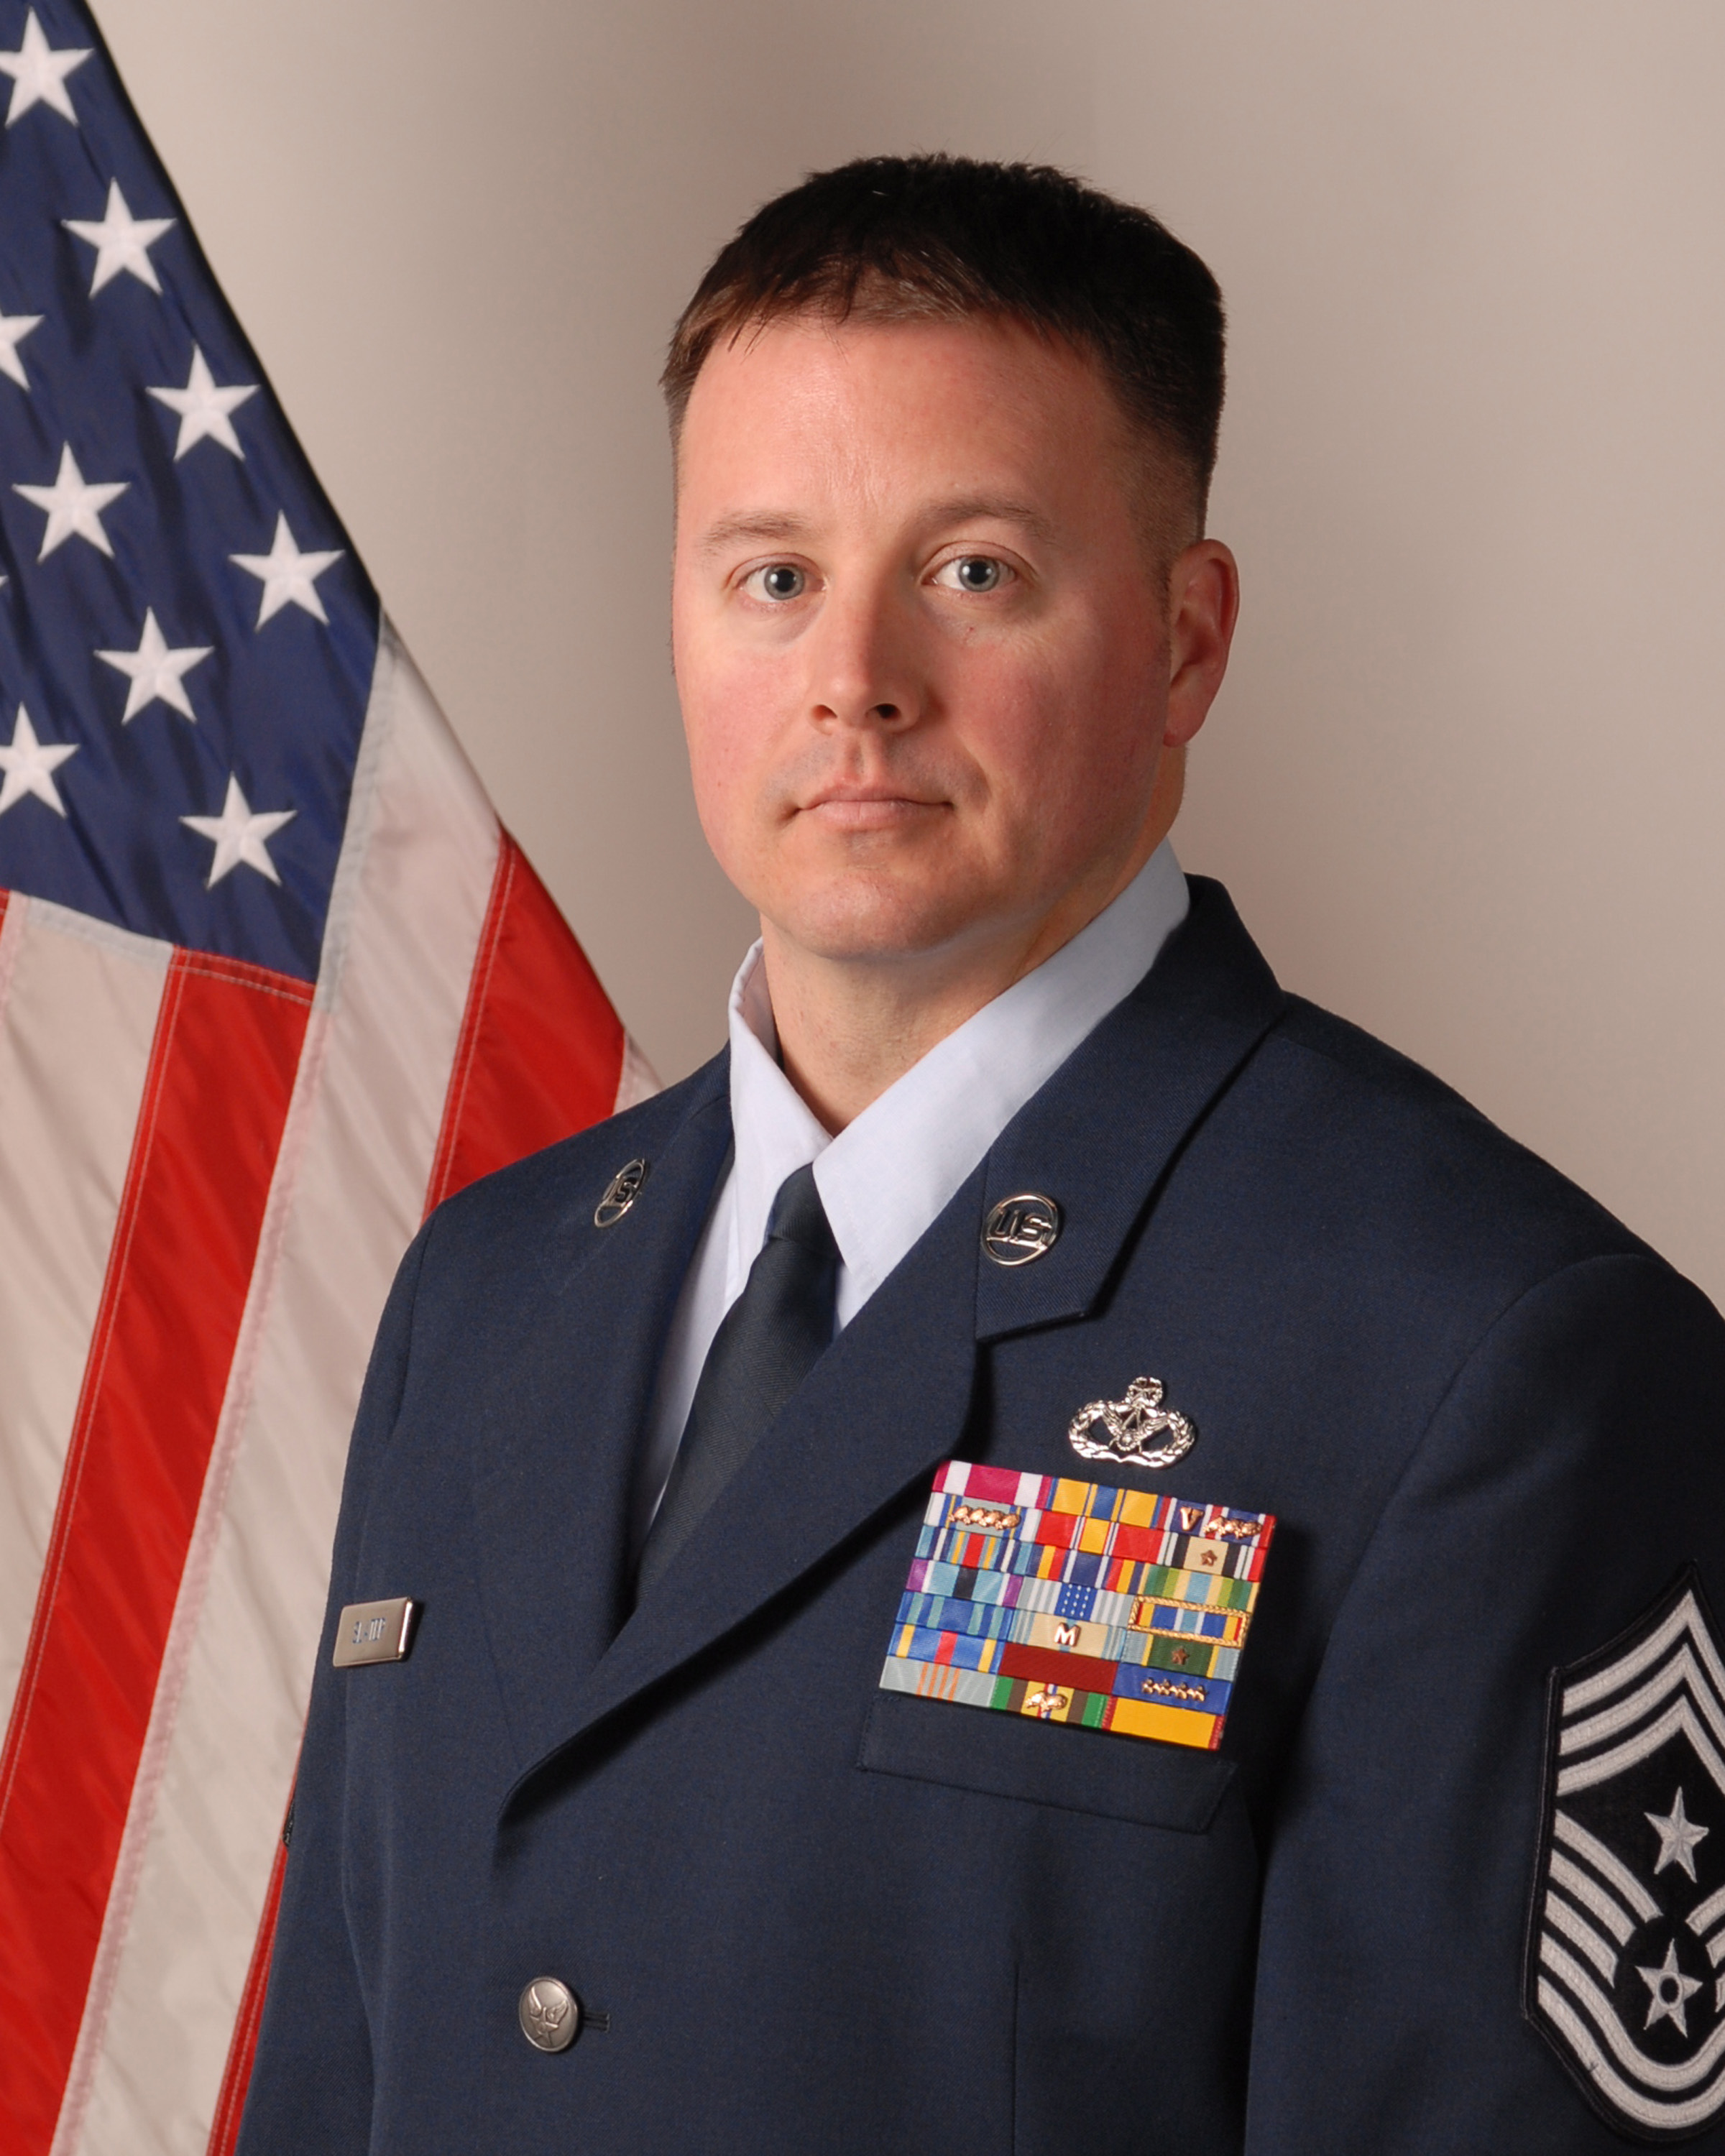 110th Wing Command Chief Master Sergeant Trever Slater